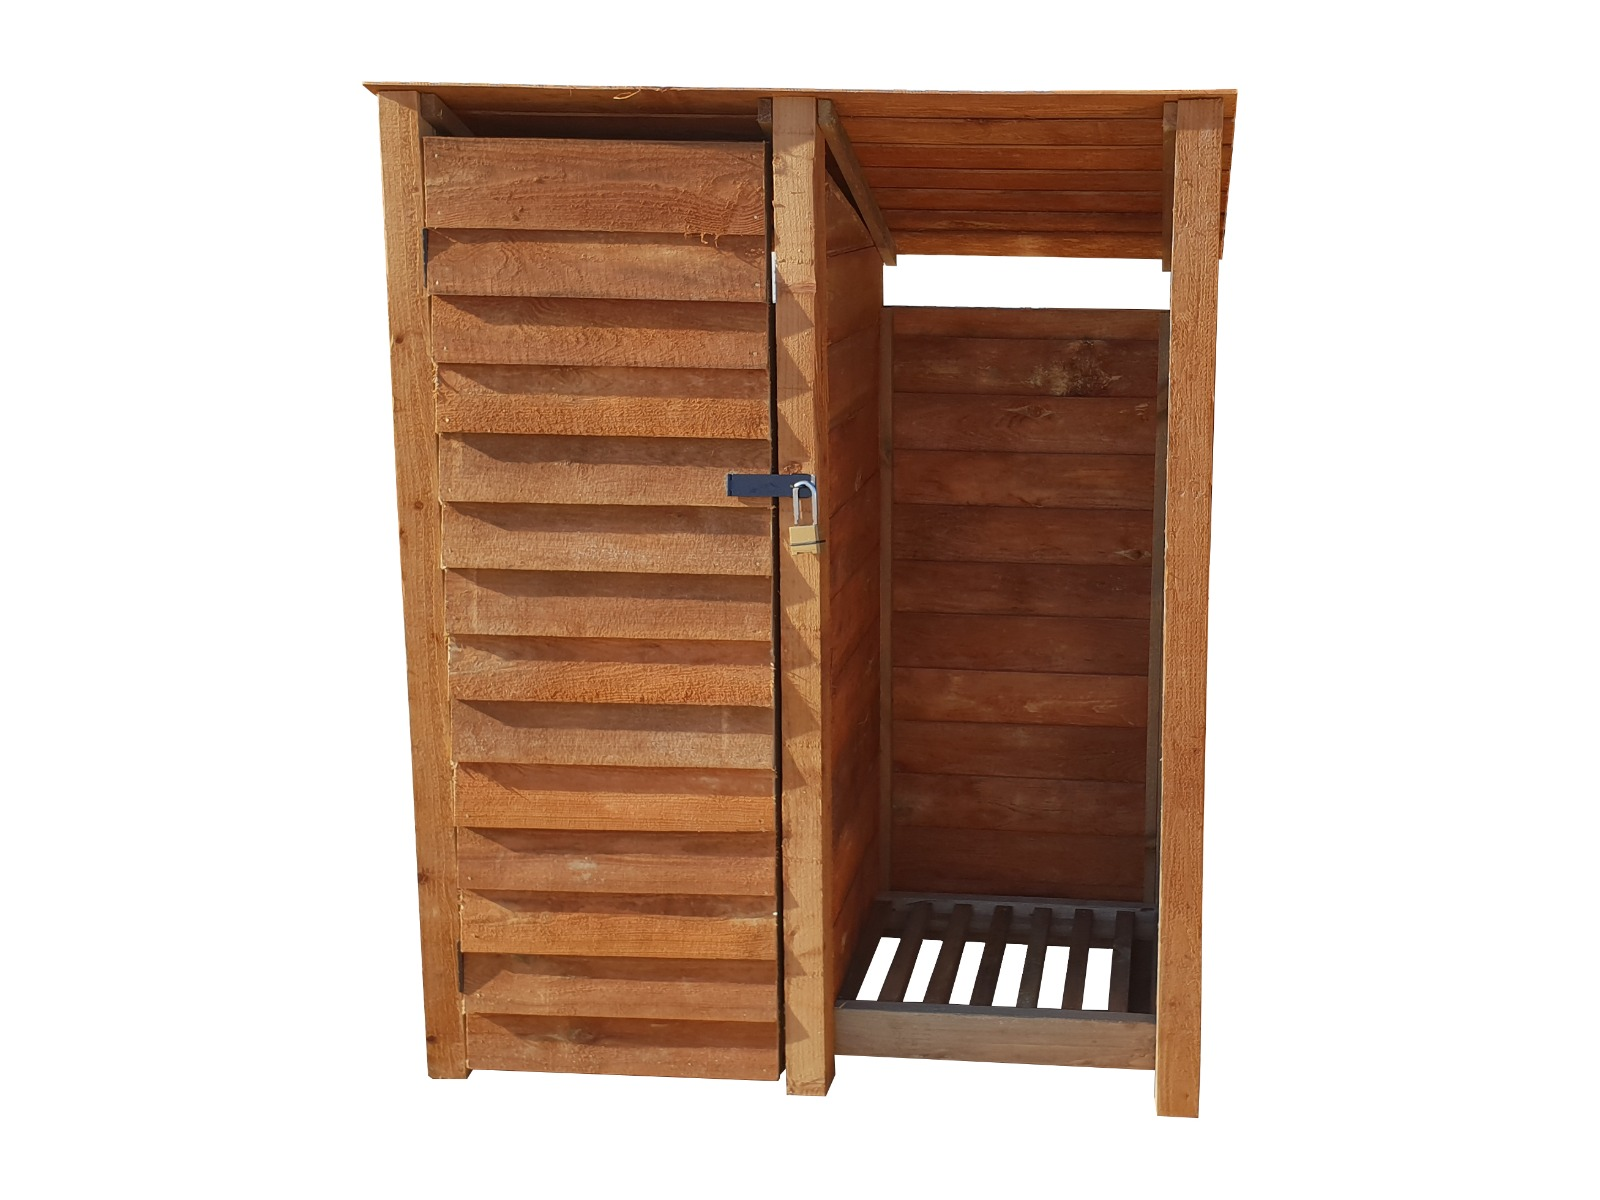 1.49 cubic meters capacity Light Green W-146cm, H-126cm, D-81cm Arbor Garden Solutions Wooden Log Store 4Ft or Brown Natural Brown